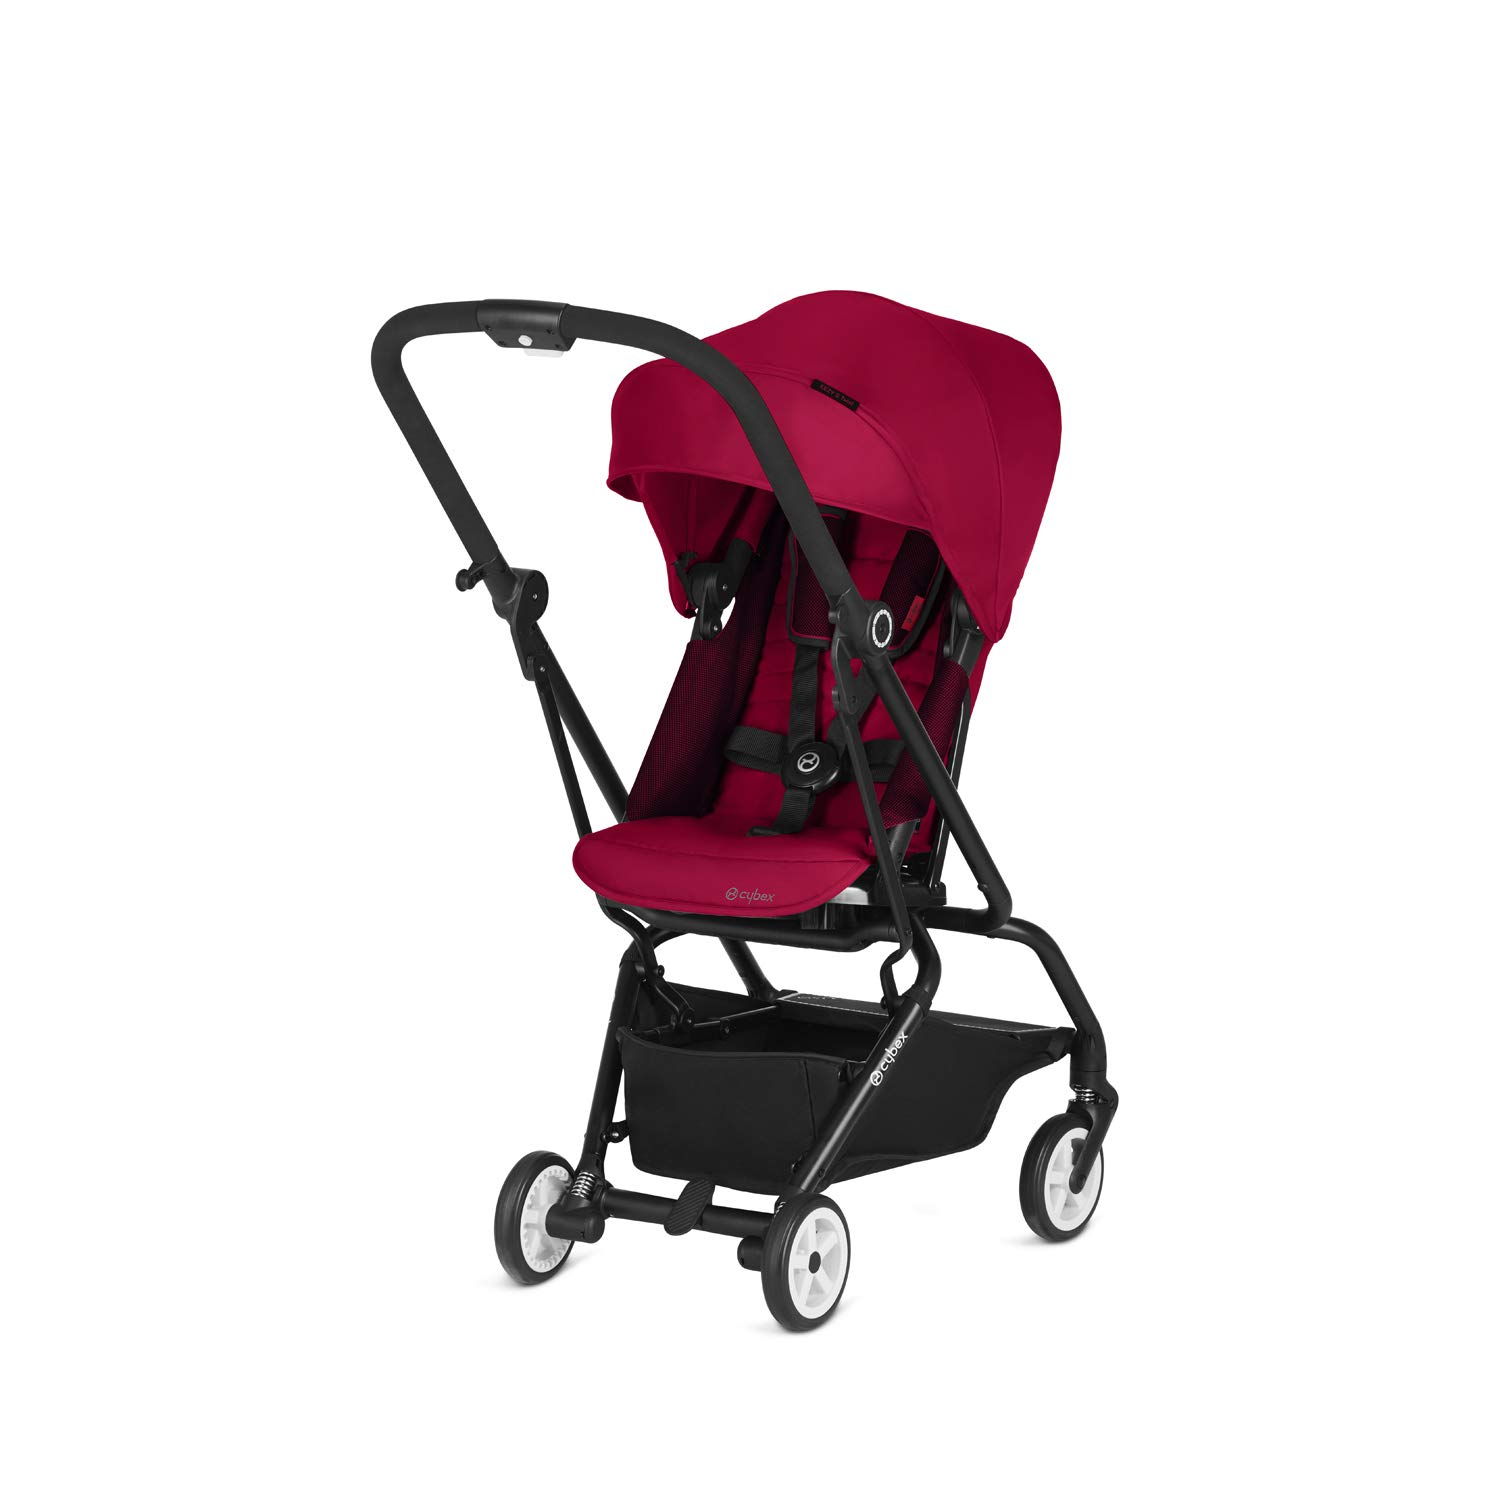 Cybex 2018 Eezy S Twist Stroller for Scuderia Ferrari''Racing Red'' - Unique one-Hand rotatable seat Unit